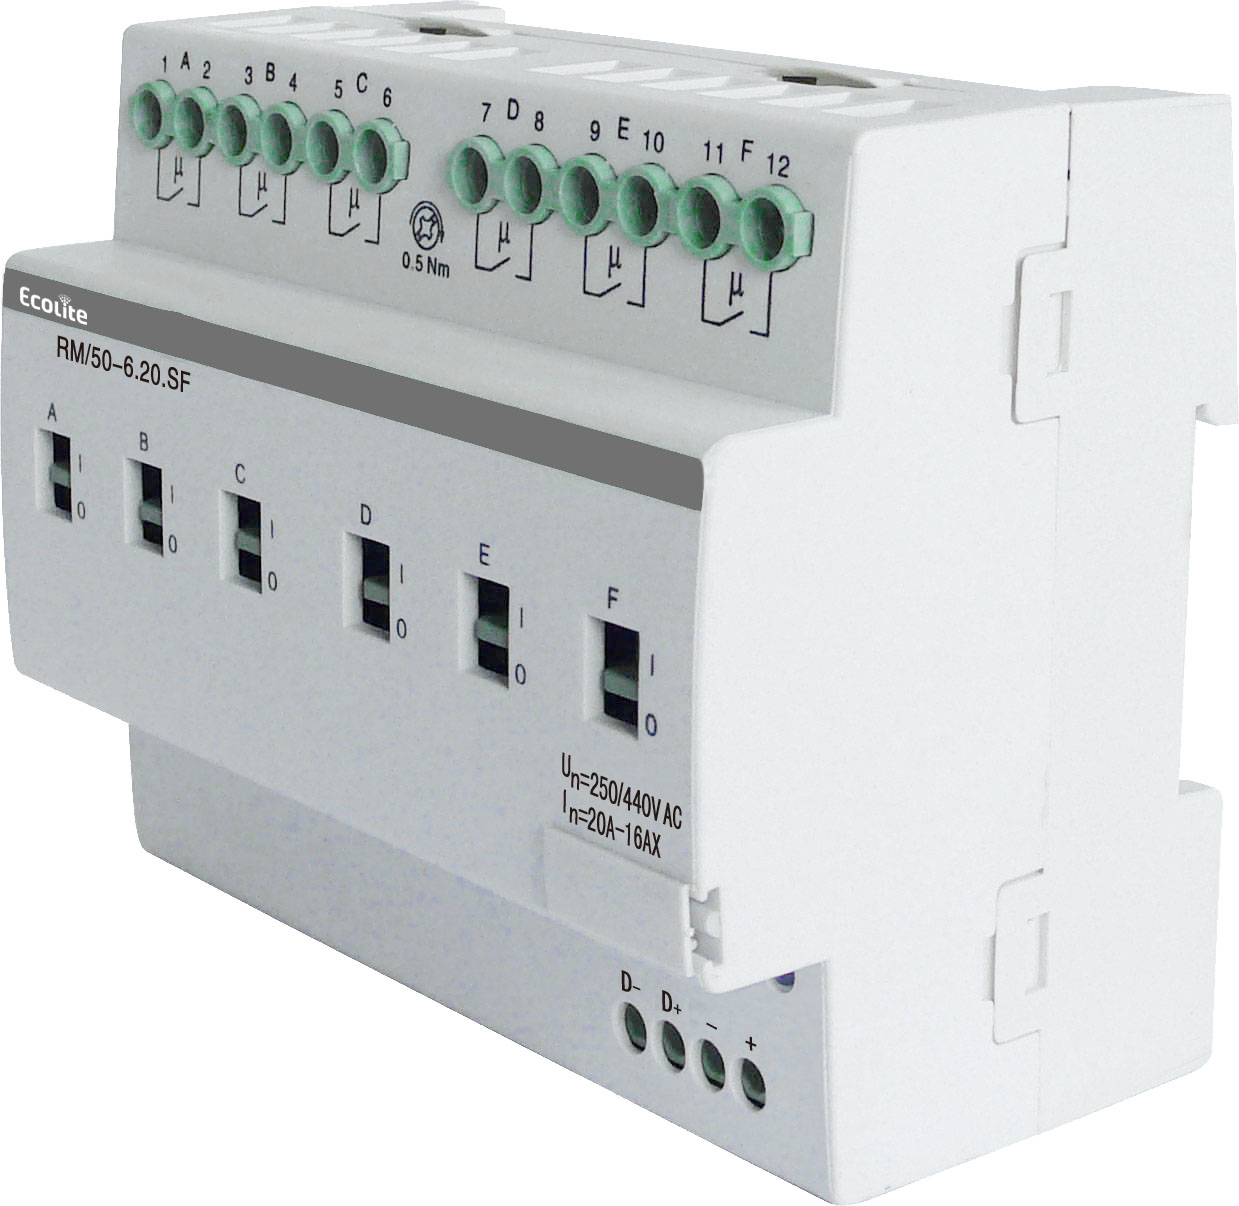 6-way switch controller